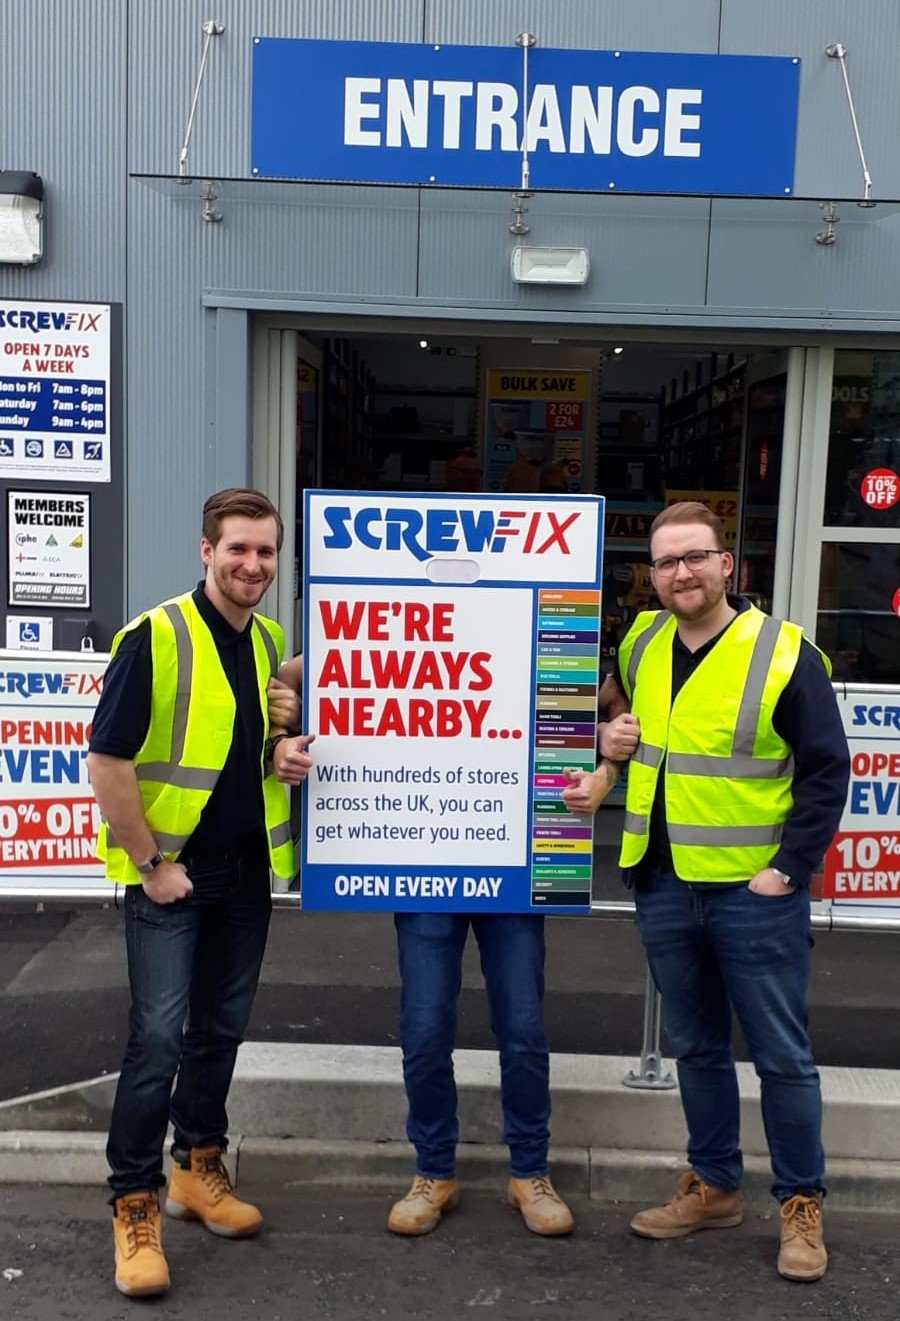 Screwfix opens its doors in Linlithgow